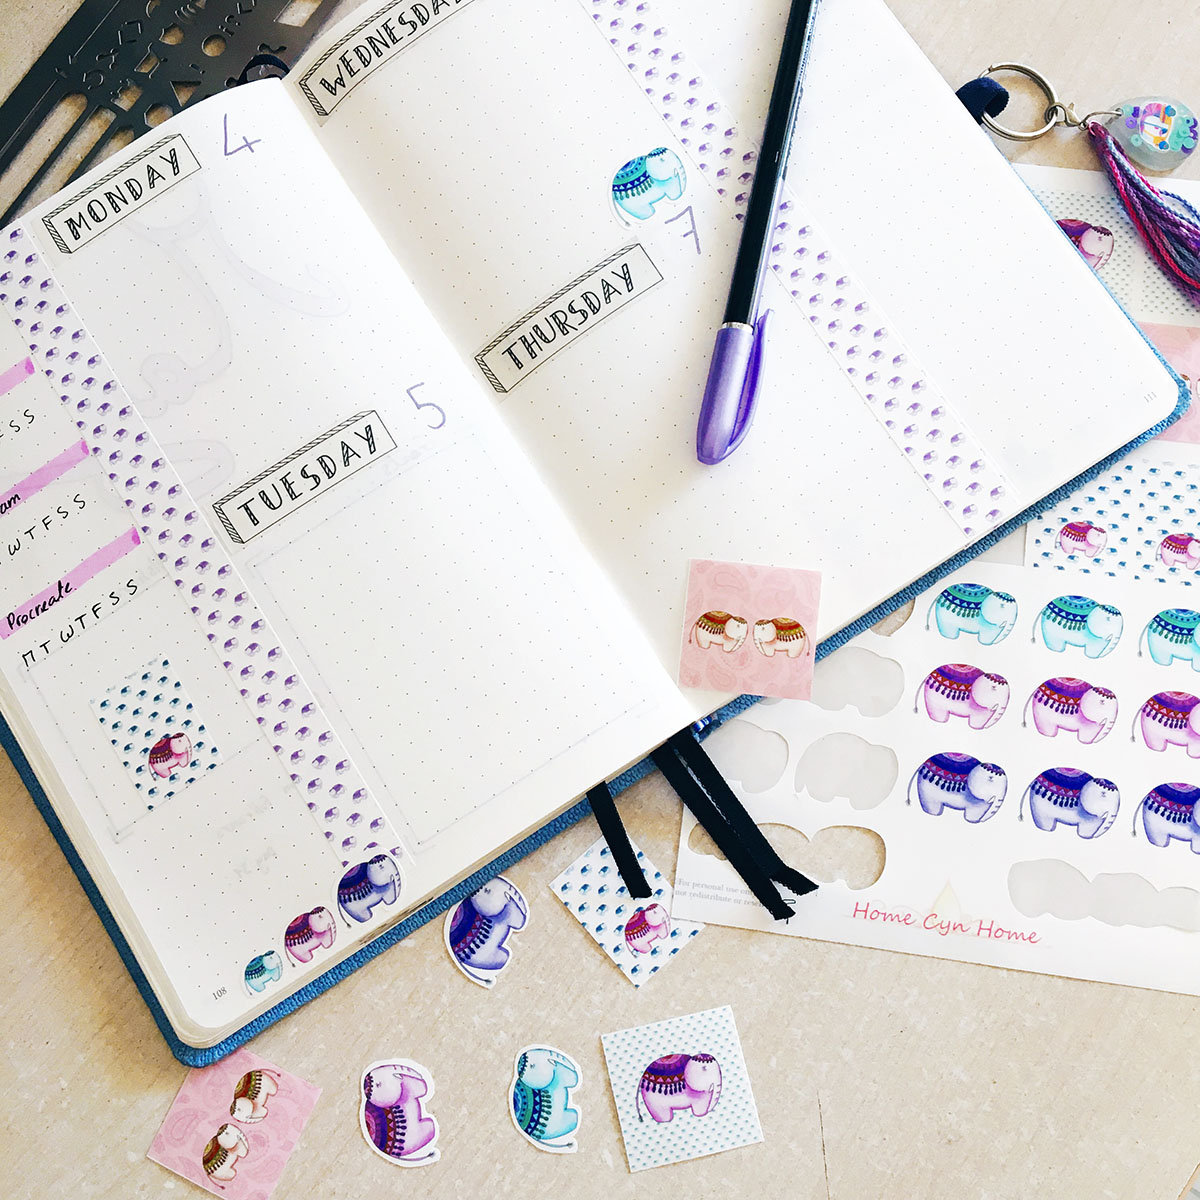 A bullet journal spread with Home Cyn Home printable stickers